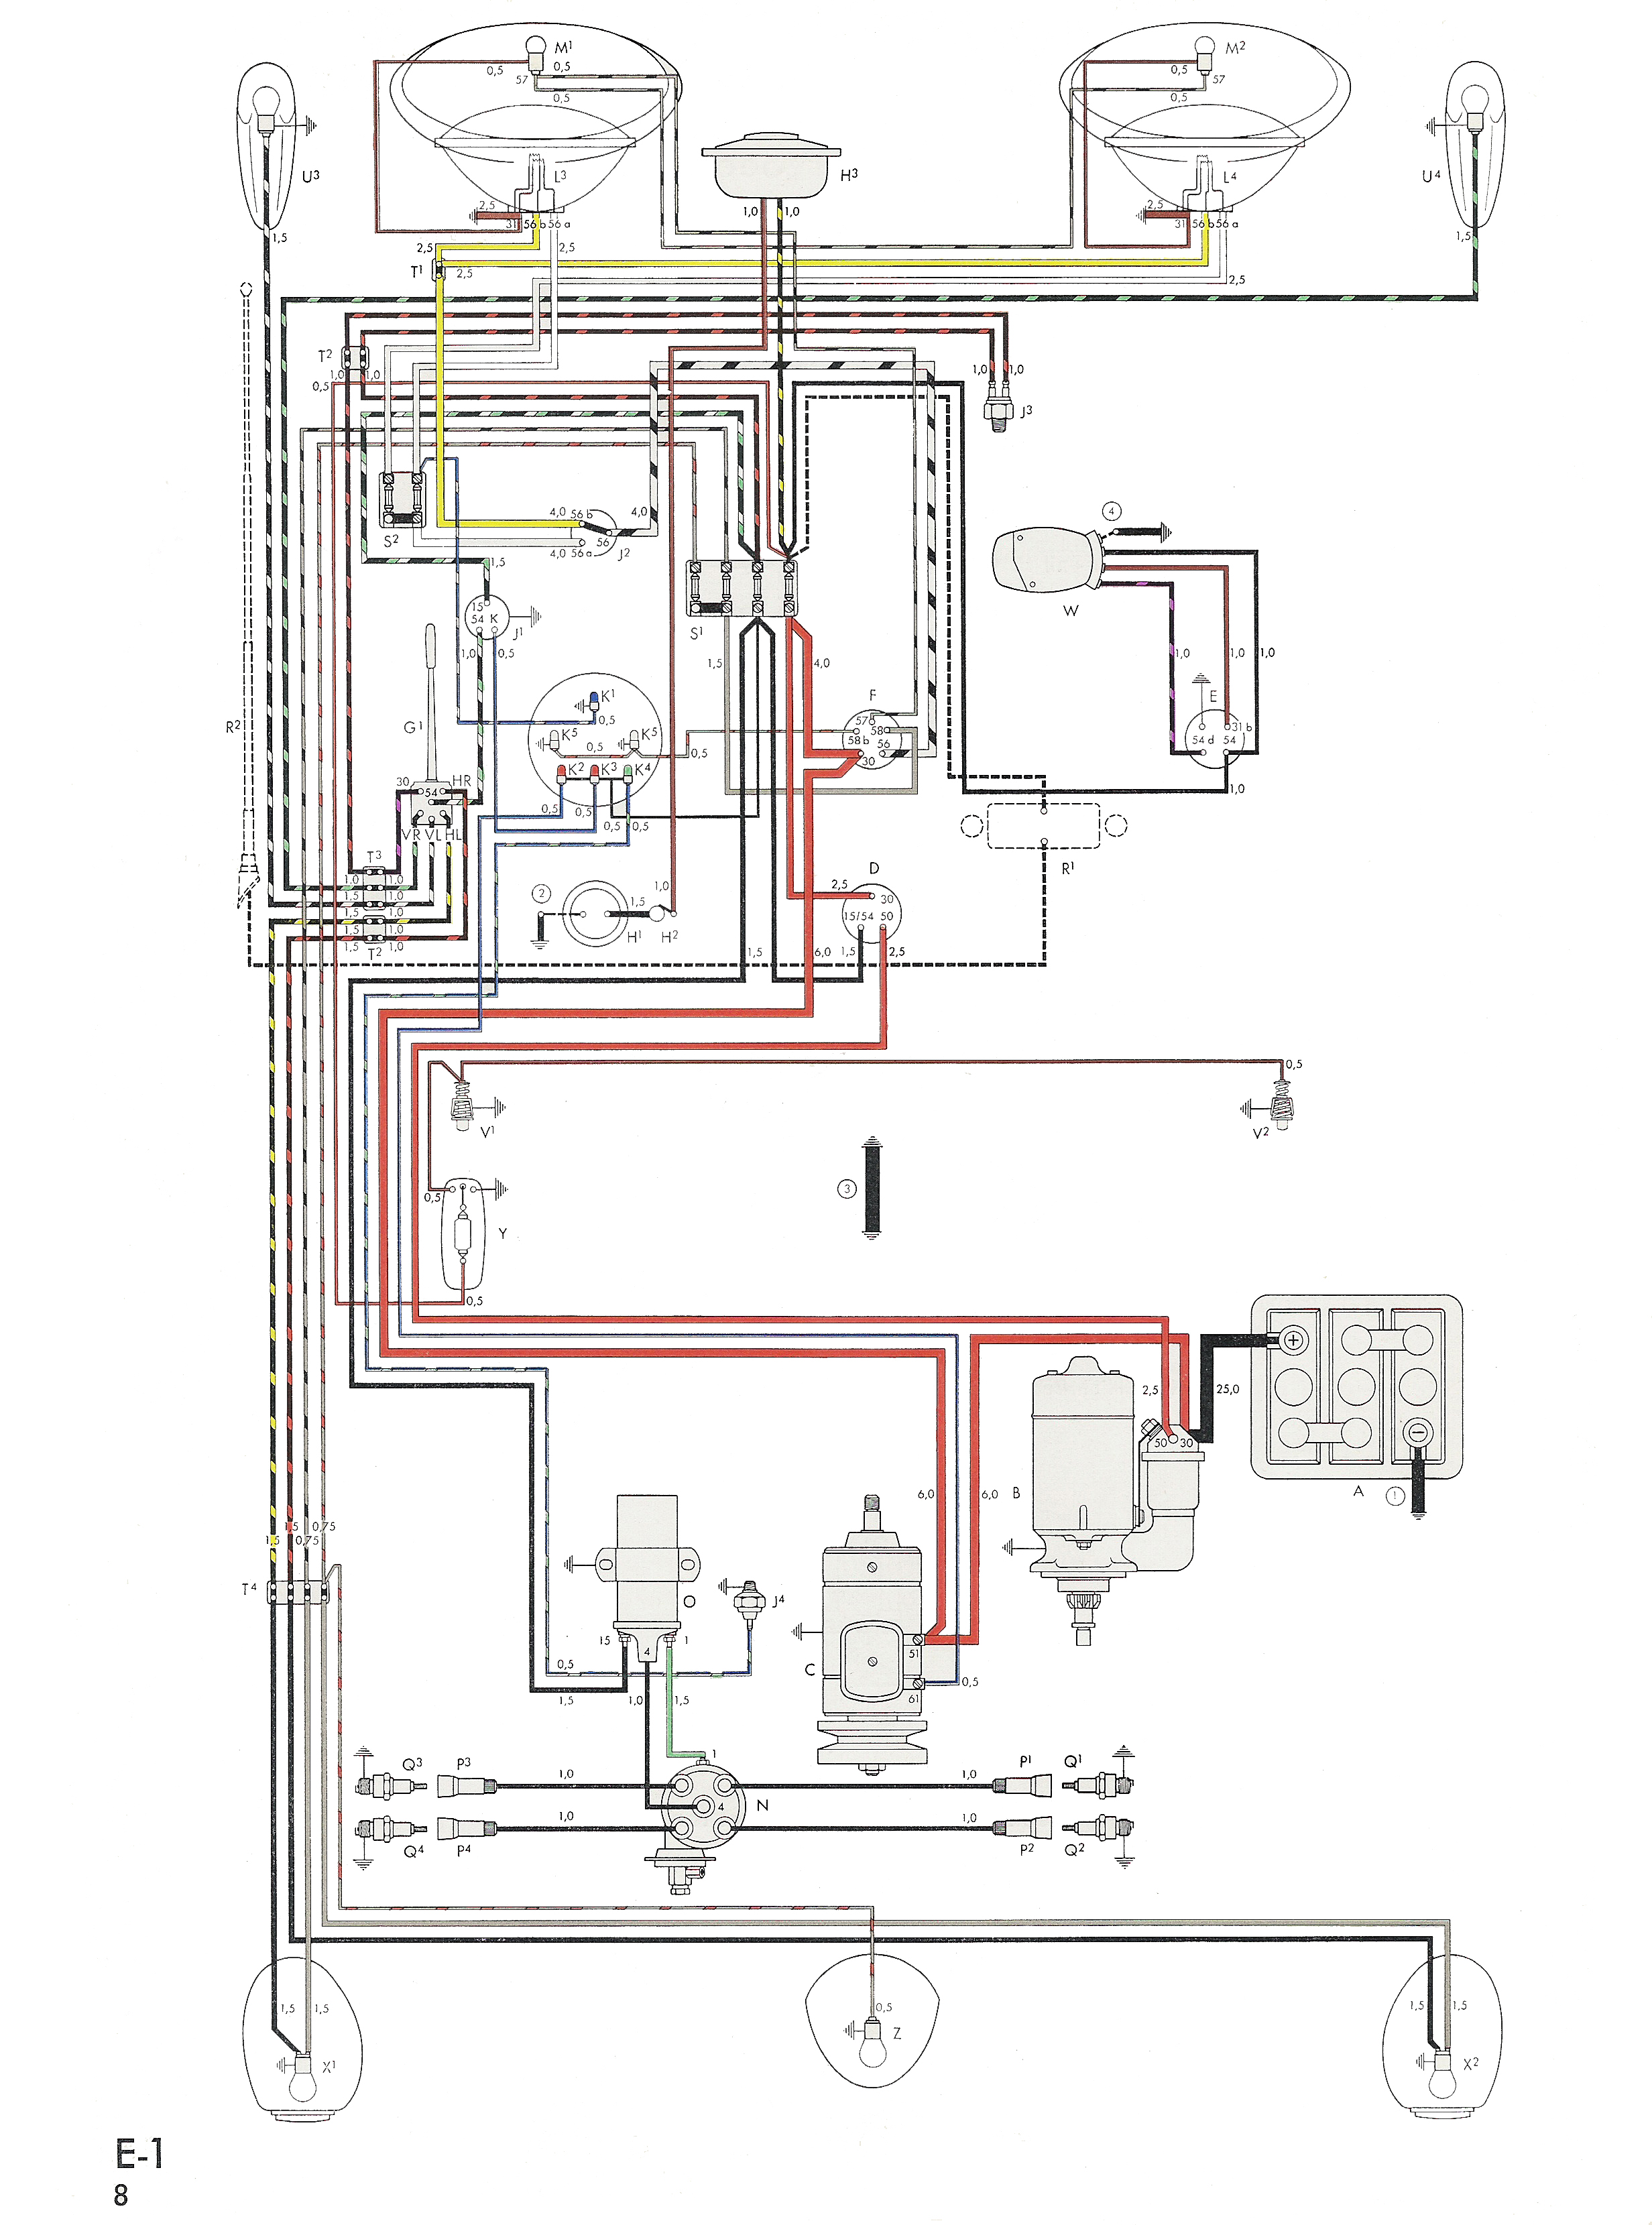 bug_58_USA_300dpi thesamba com type 1 wiring diagrams find wiring diagram for 87 ford f 150 at eliteediting.co